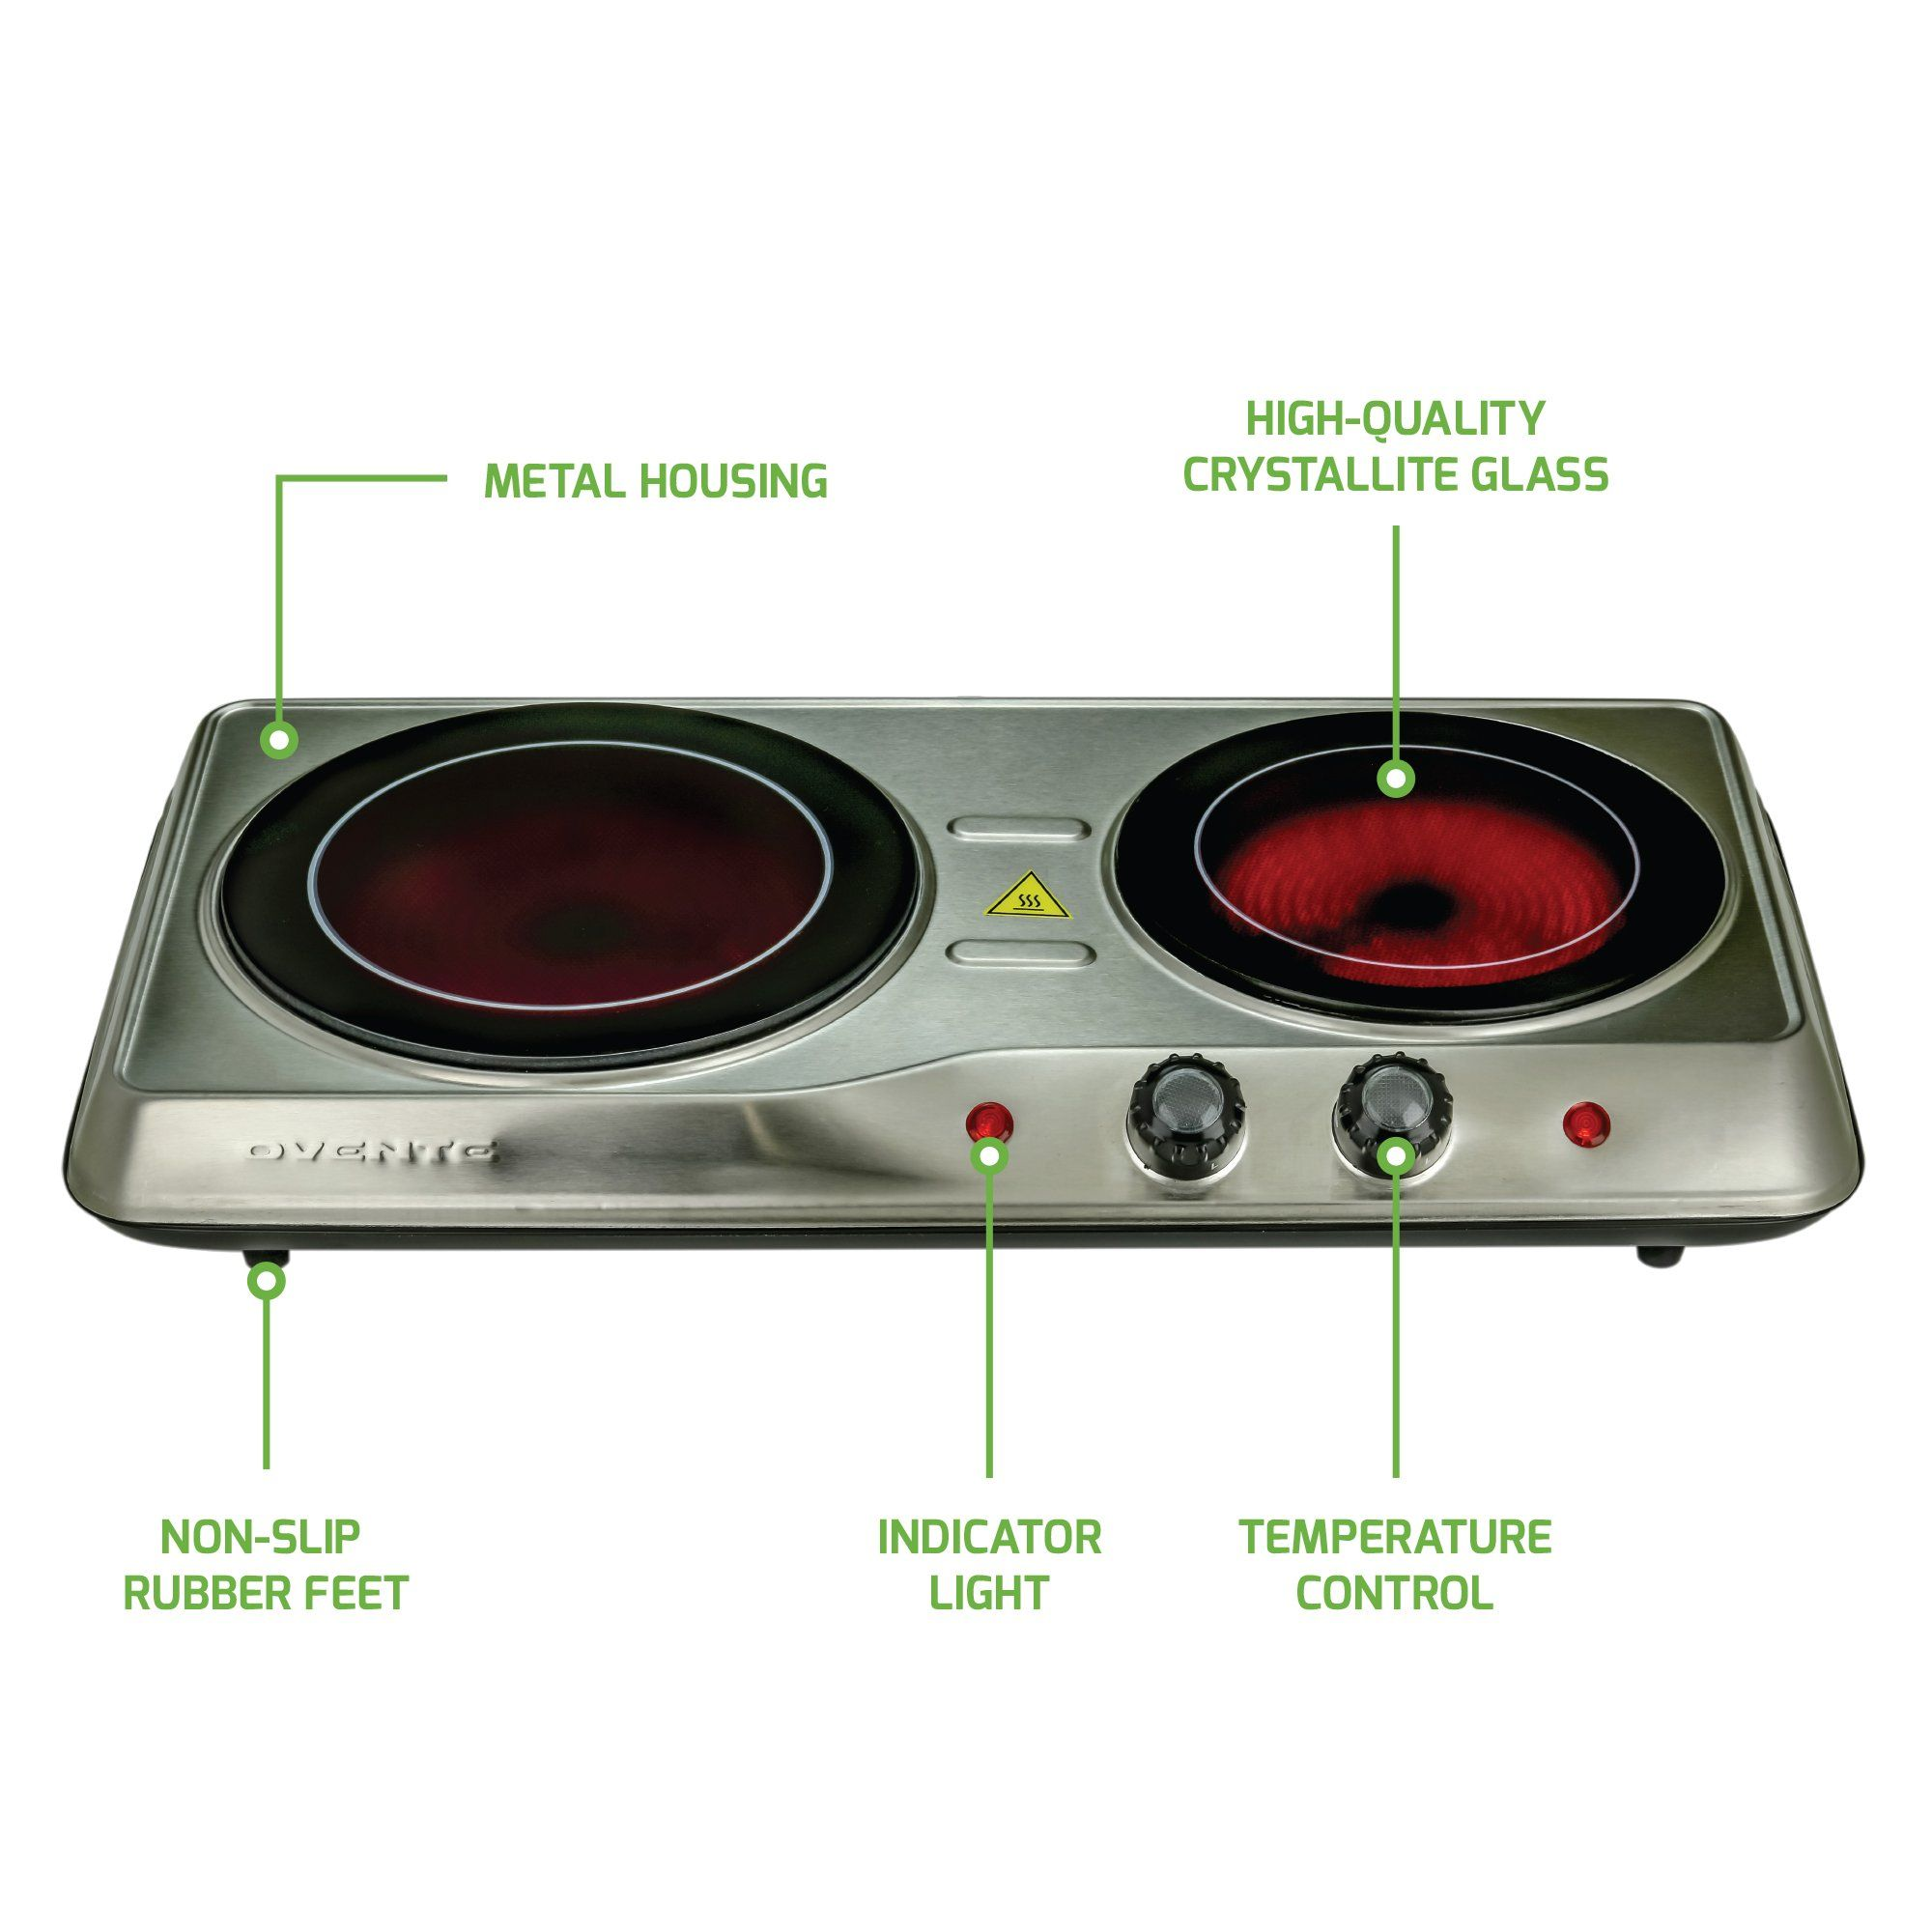 Ovente Countertop Burner Infrared Ceramic Glass Double Plate Cooktop Indoor And Outdoor Portable Stove 1700 Watts